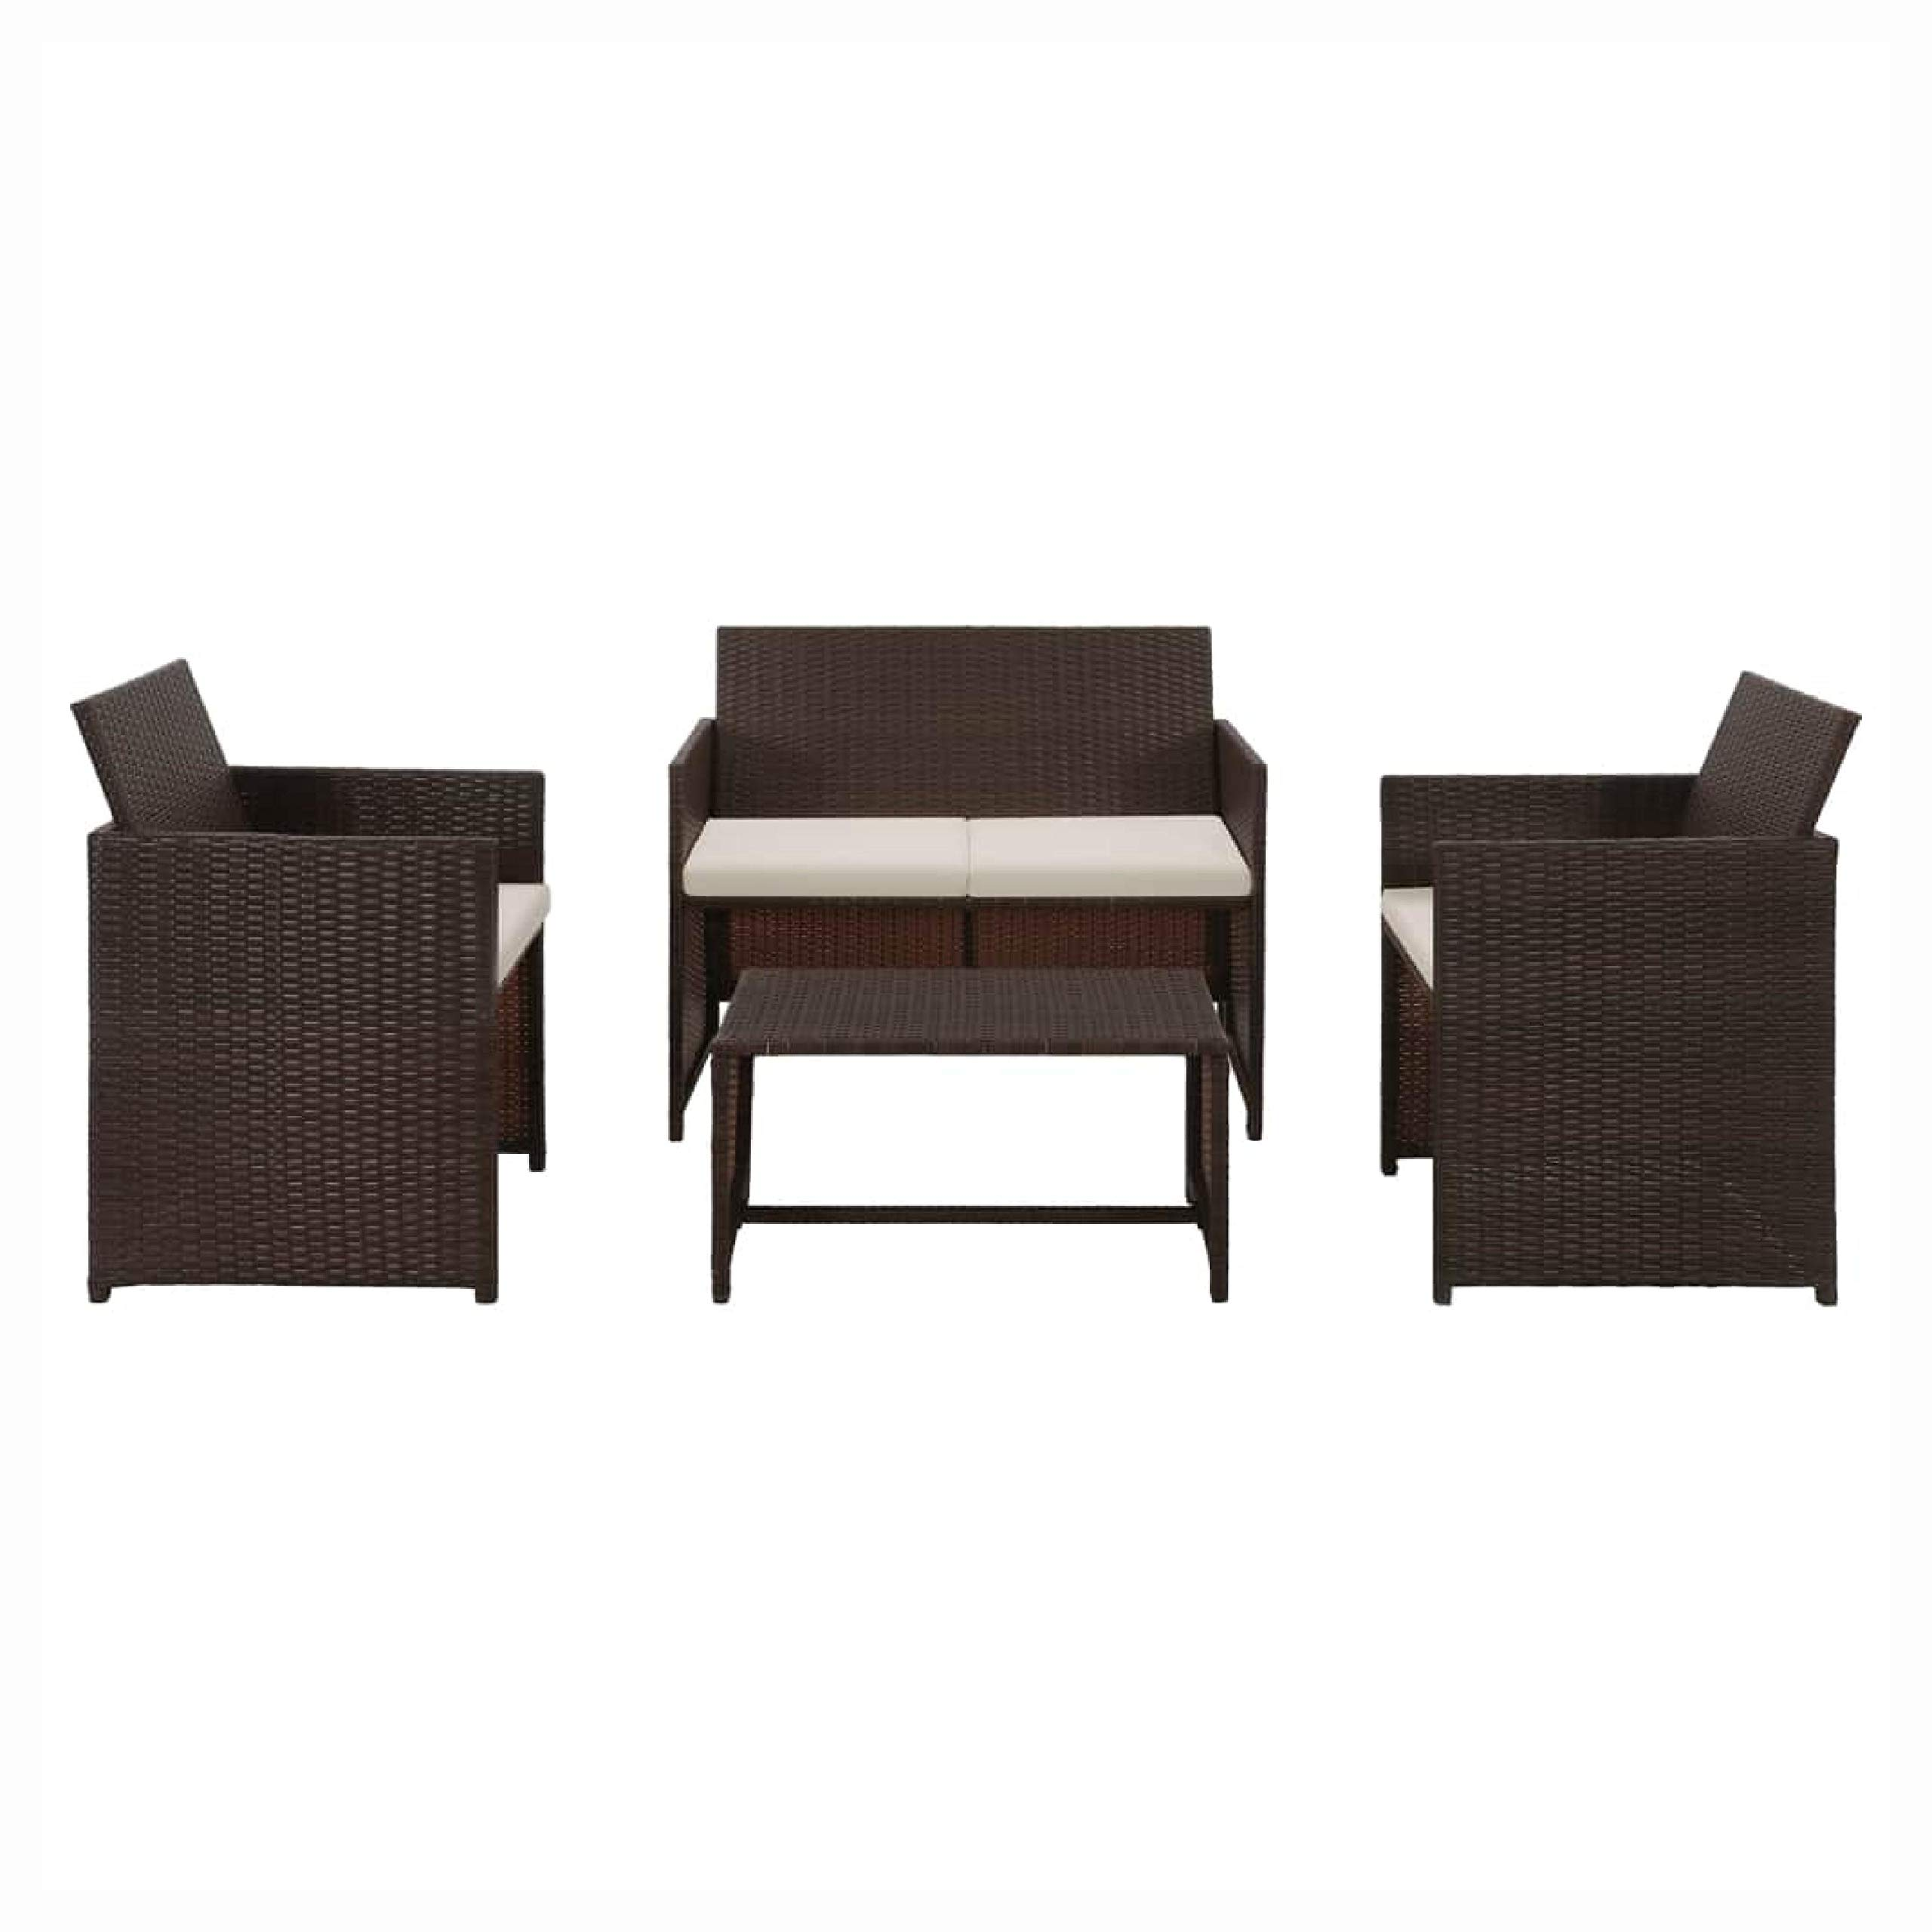 HEATAPPLY Outdoor Furniture Set, 4 Piece Garden Lounge with Cushions Set Poly Rattan Brown by HEATAPPLY